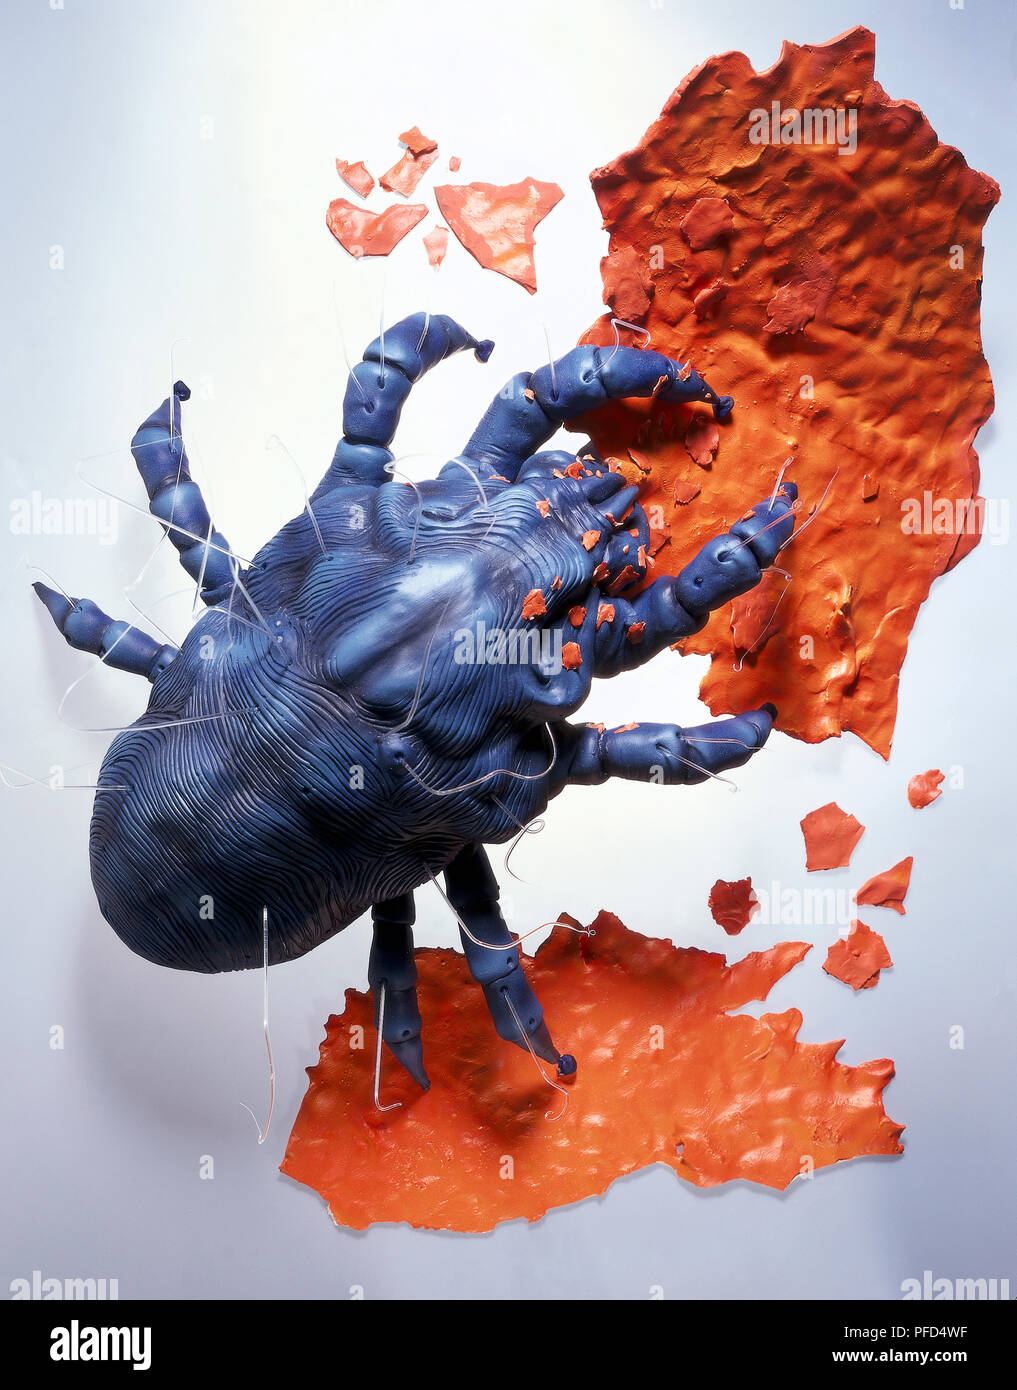 Model of House Dust Mite (Dermatophagoides pteronyssinus), view from above Stock Photo